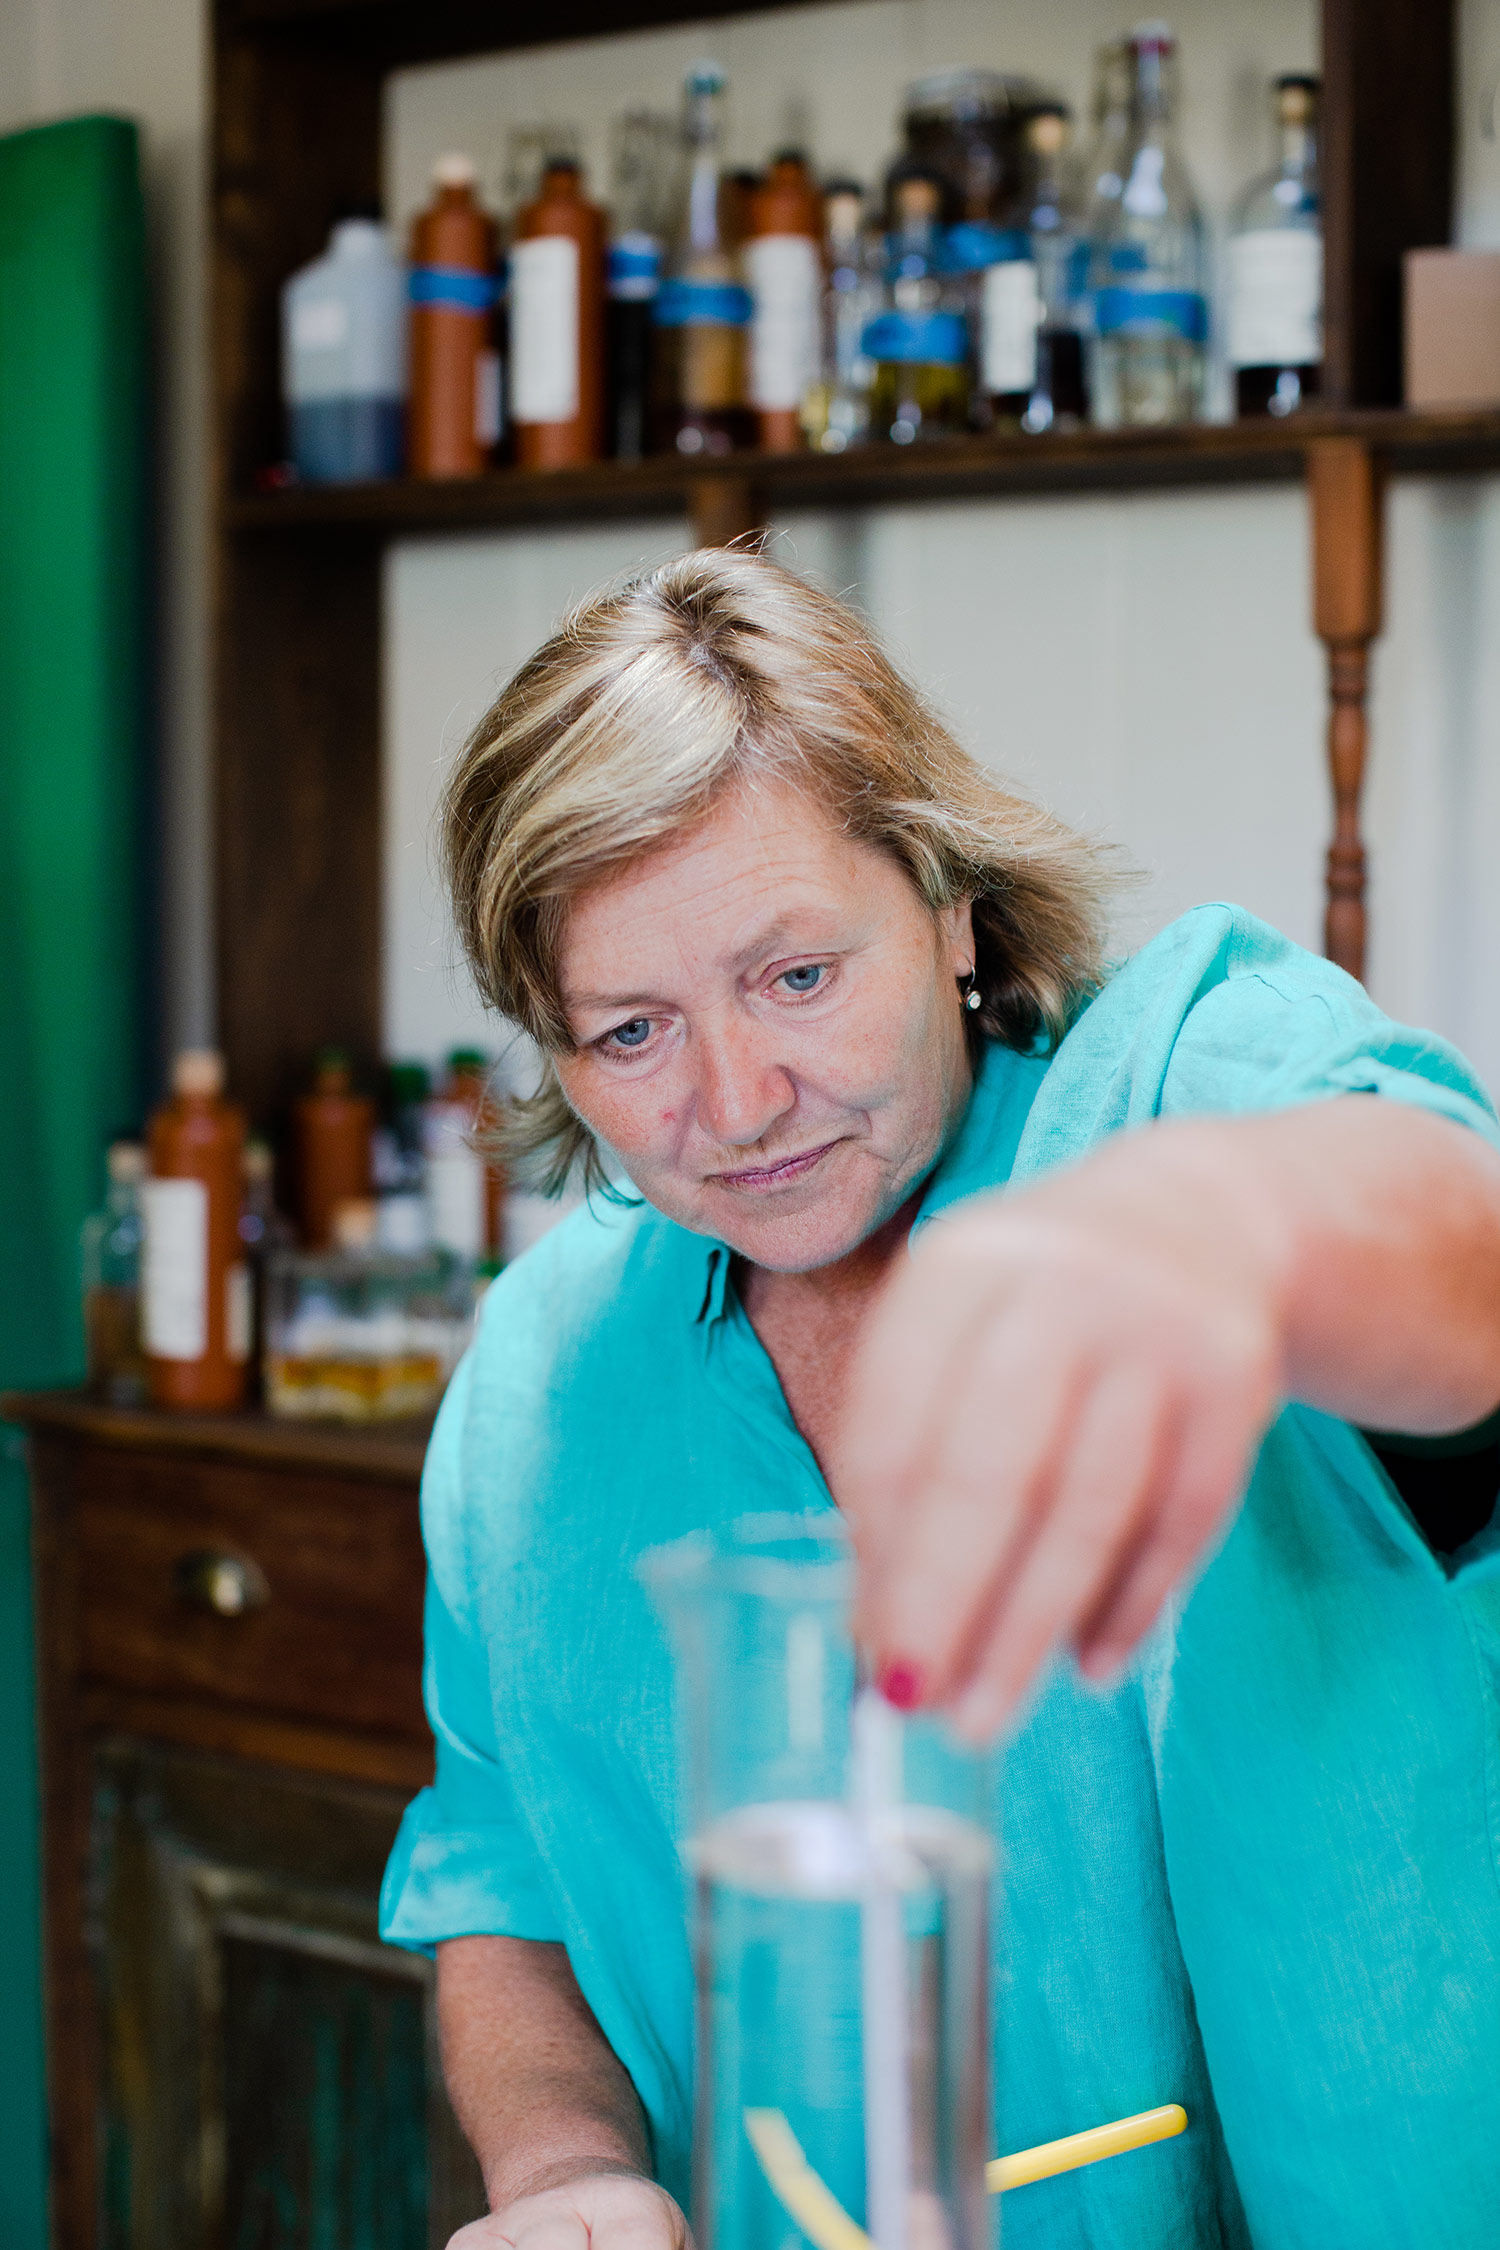 Master mixologist Sue Mullett is the owner of Bath Botanical Gin Distillery